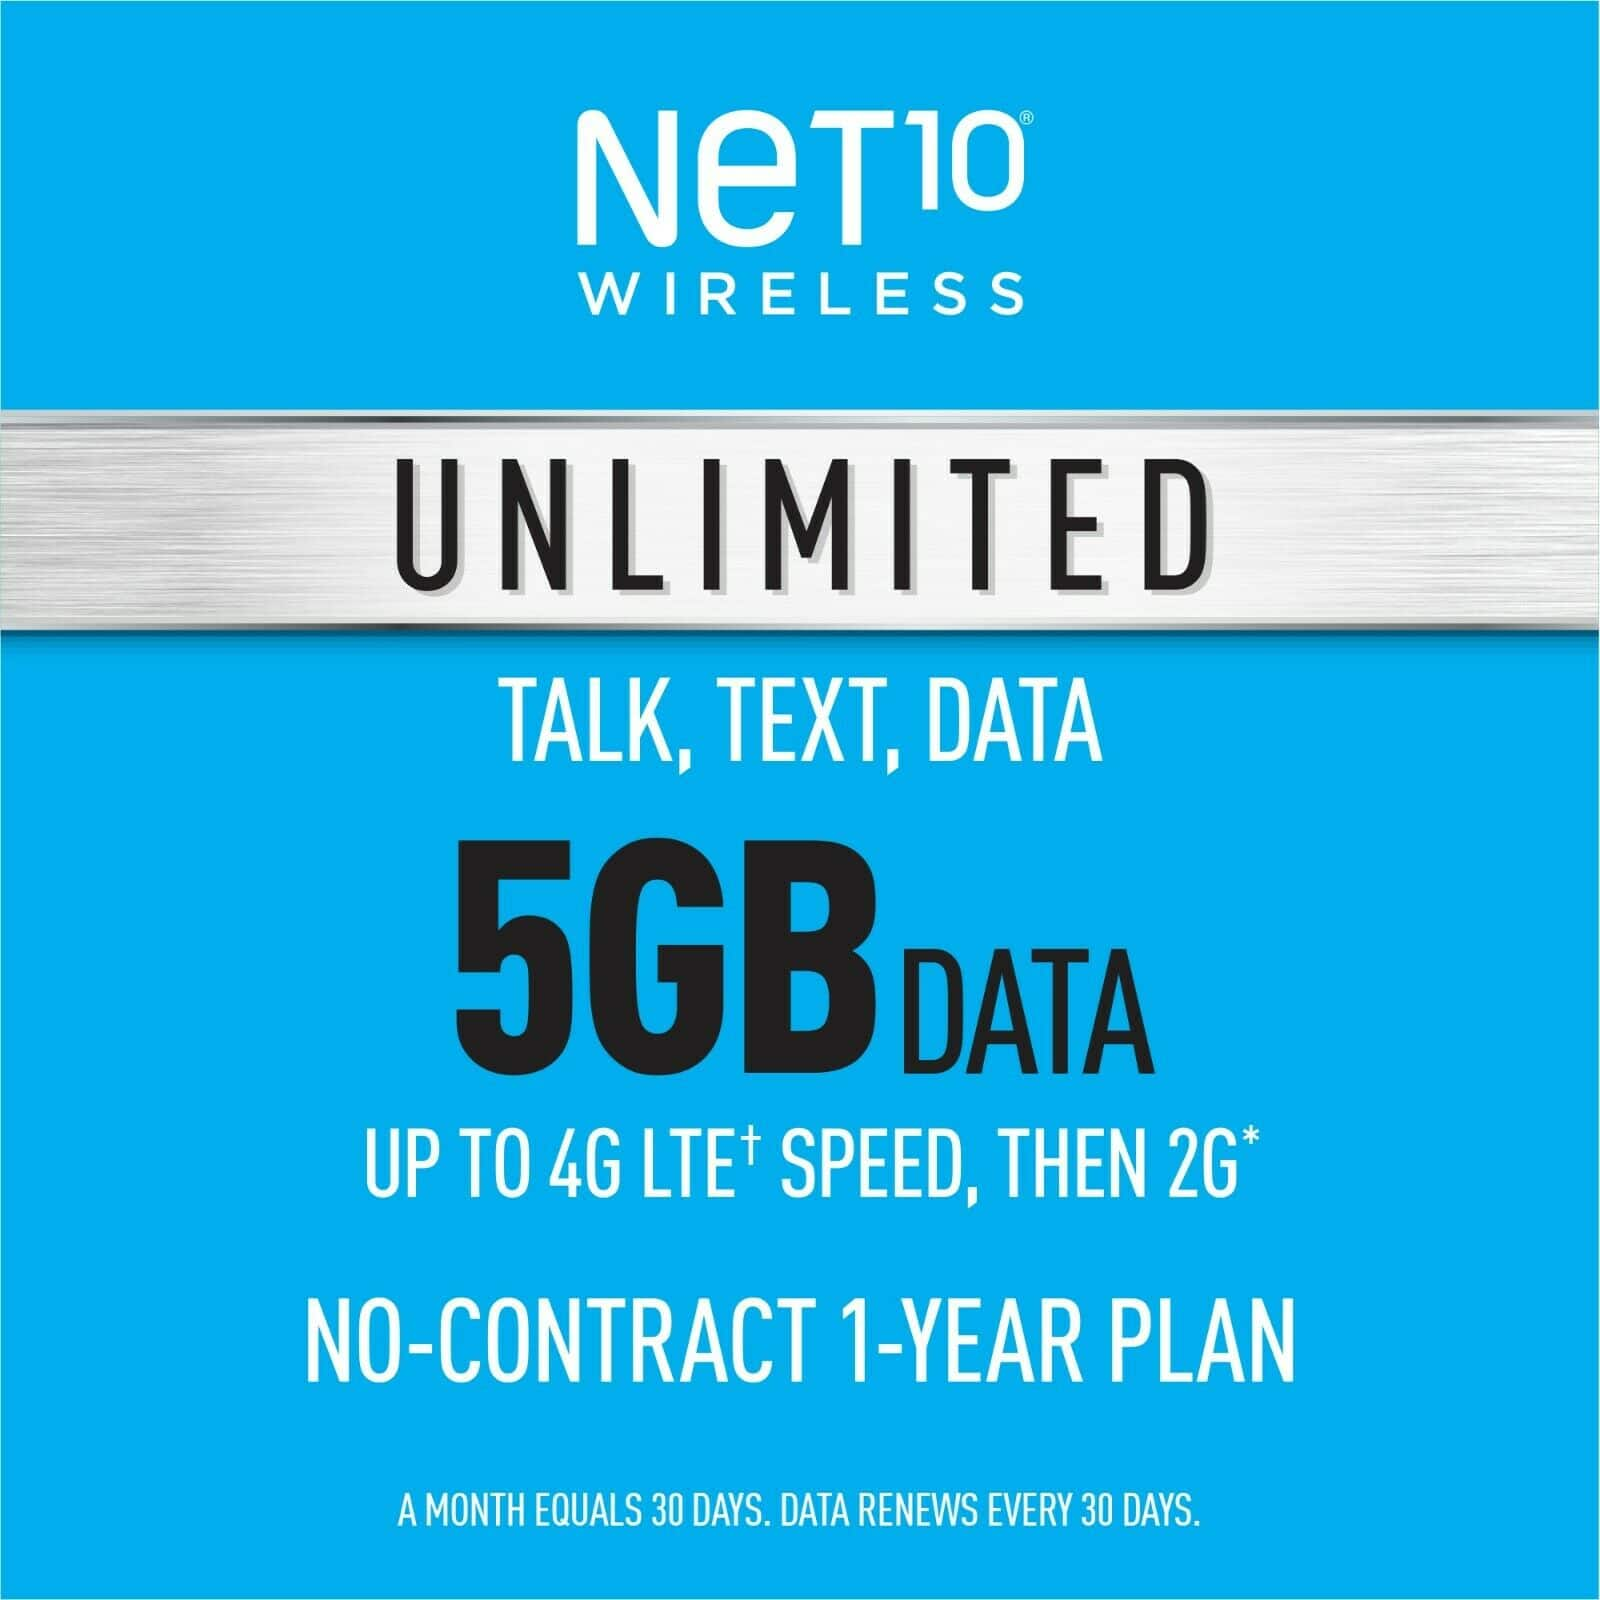 Net10 Unlimited Yearly Plans 5GB $239.99 1GB $199.99 eBay Exclusive